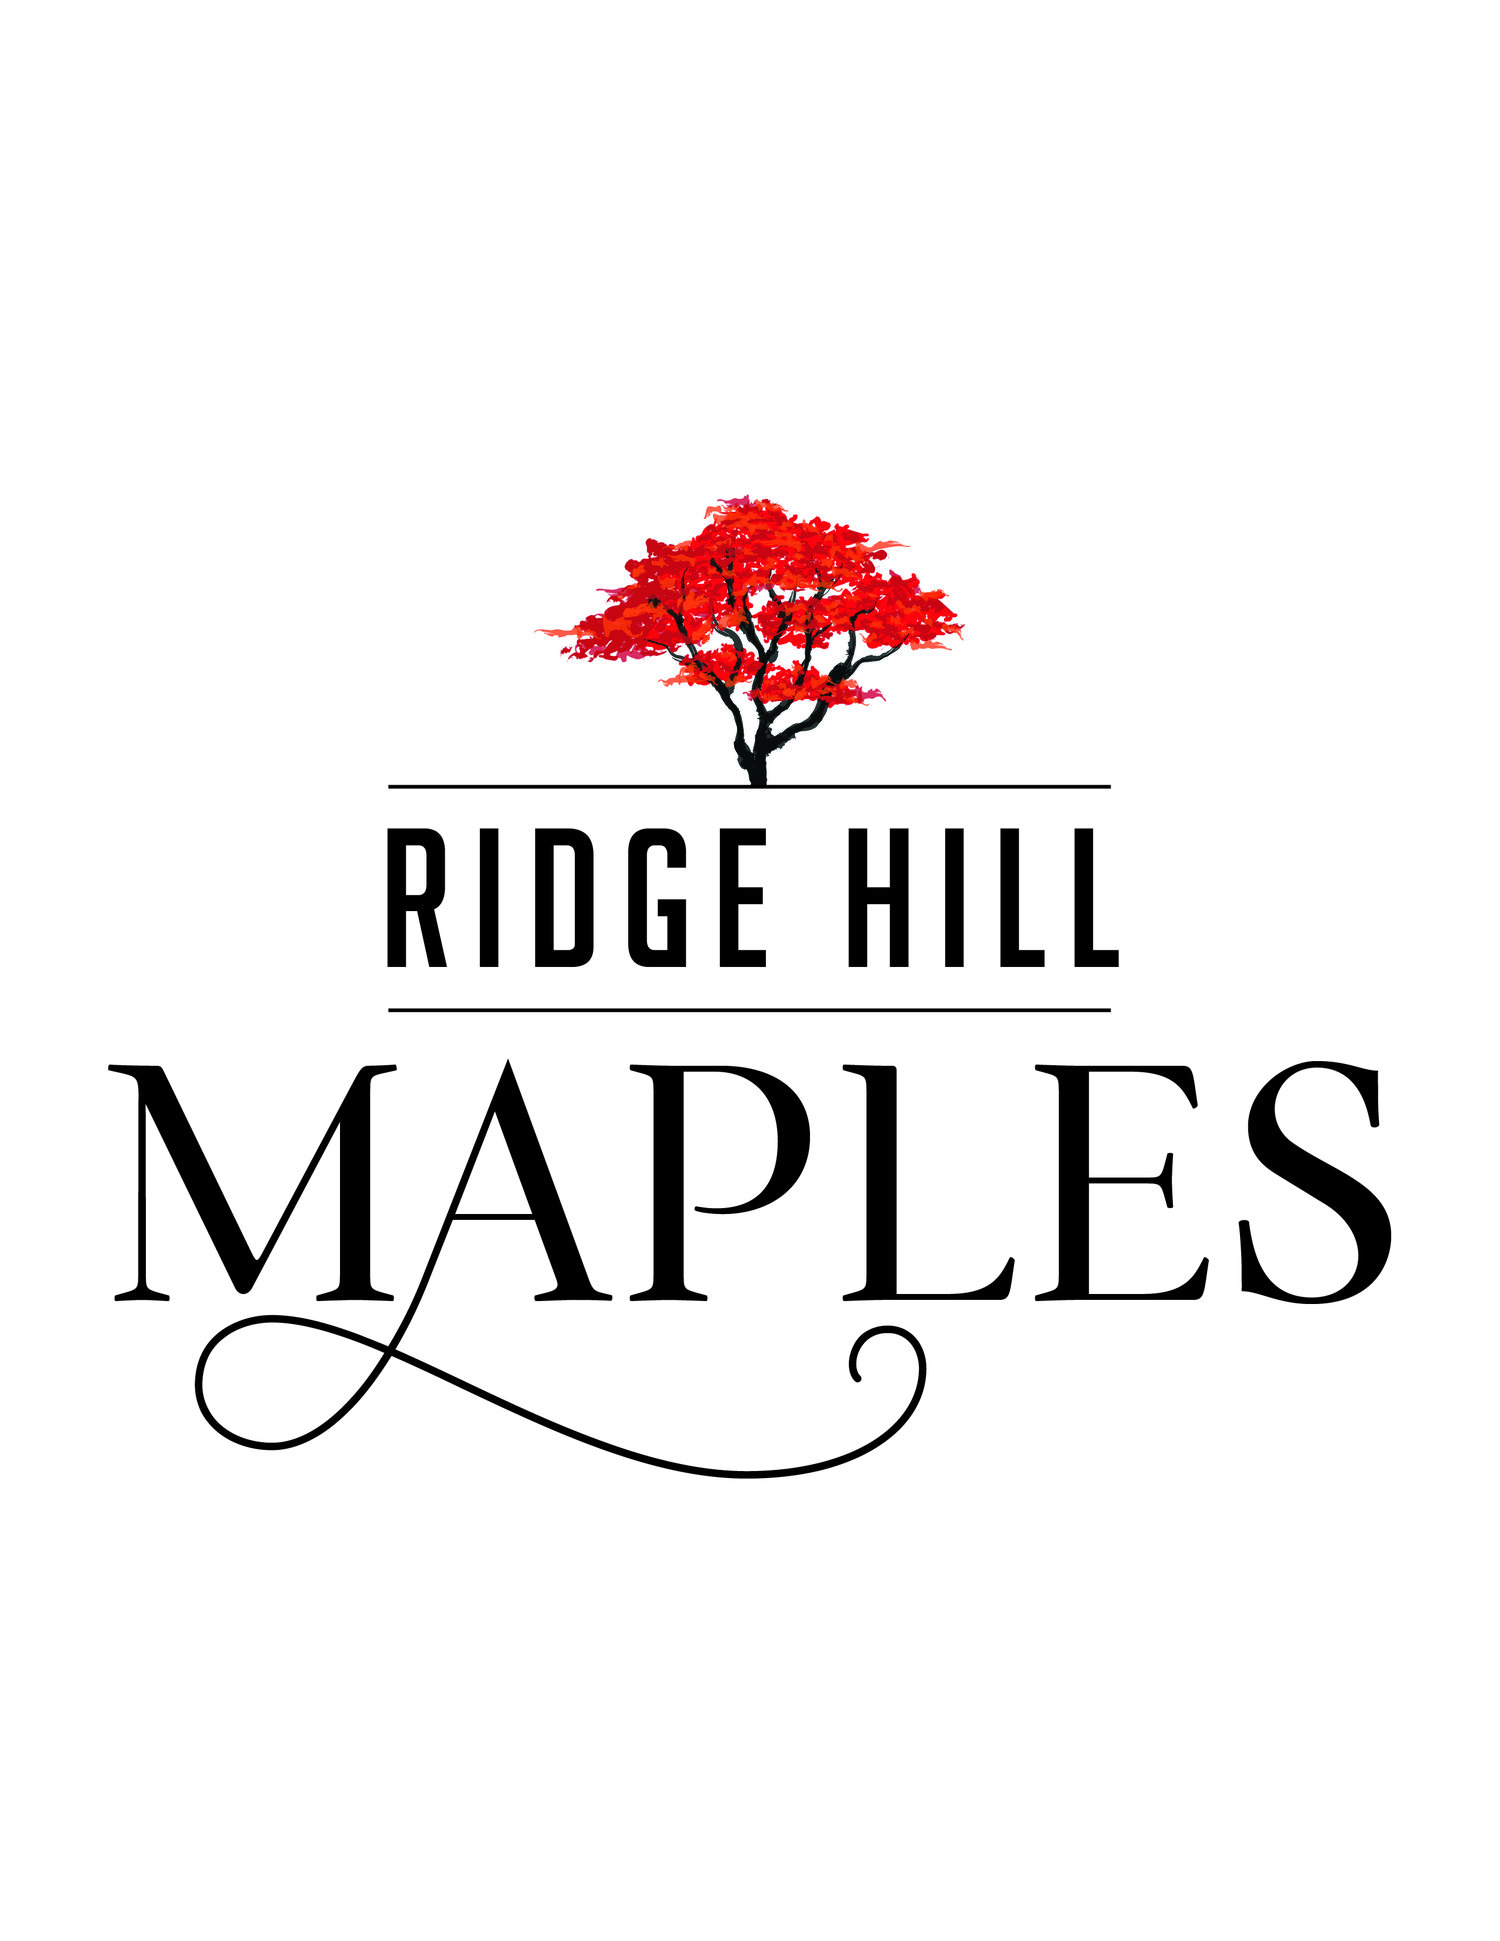 RIDGE HILL MAPLES